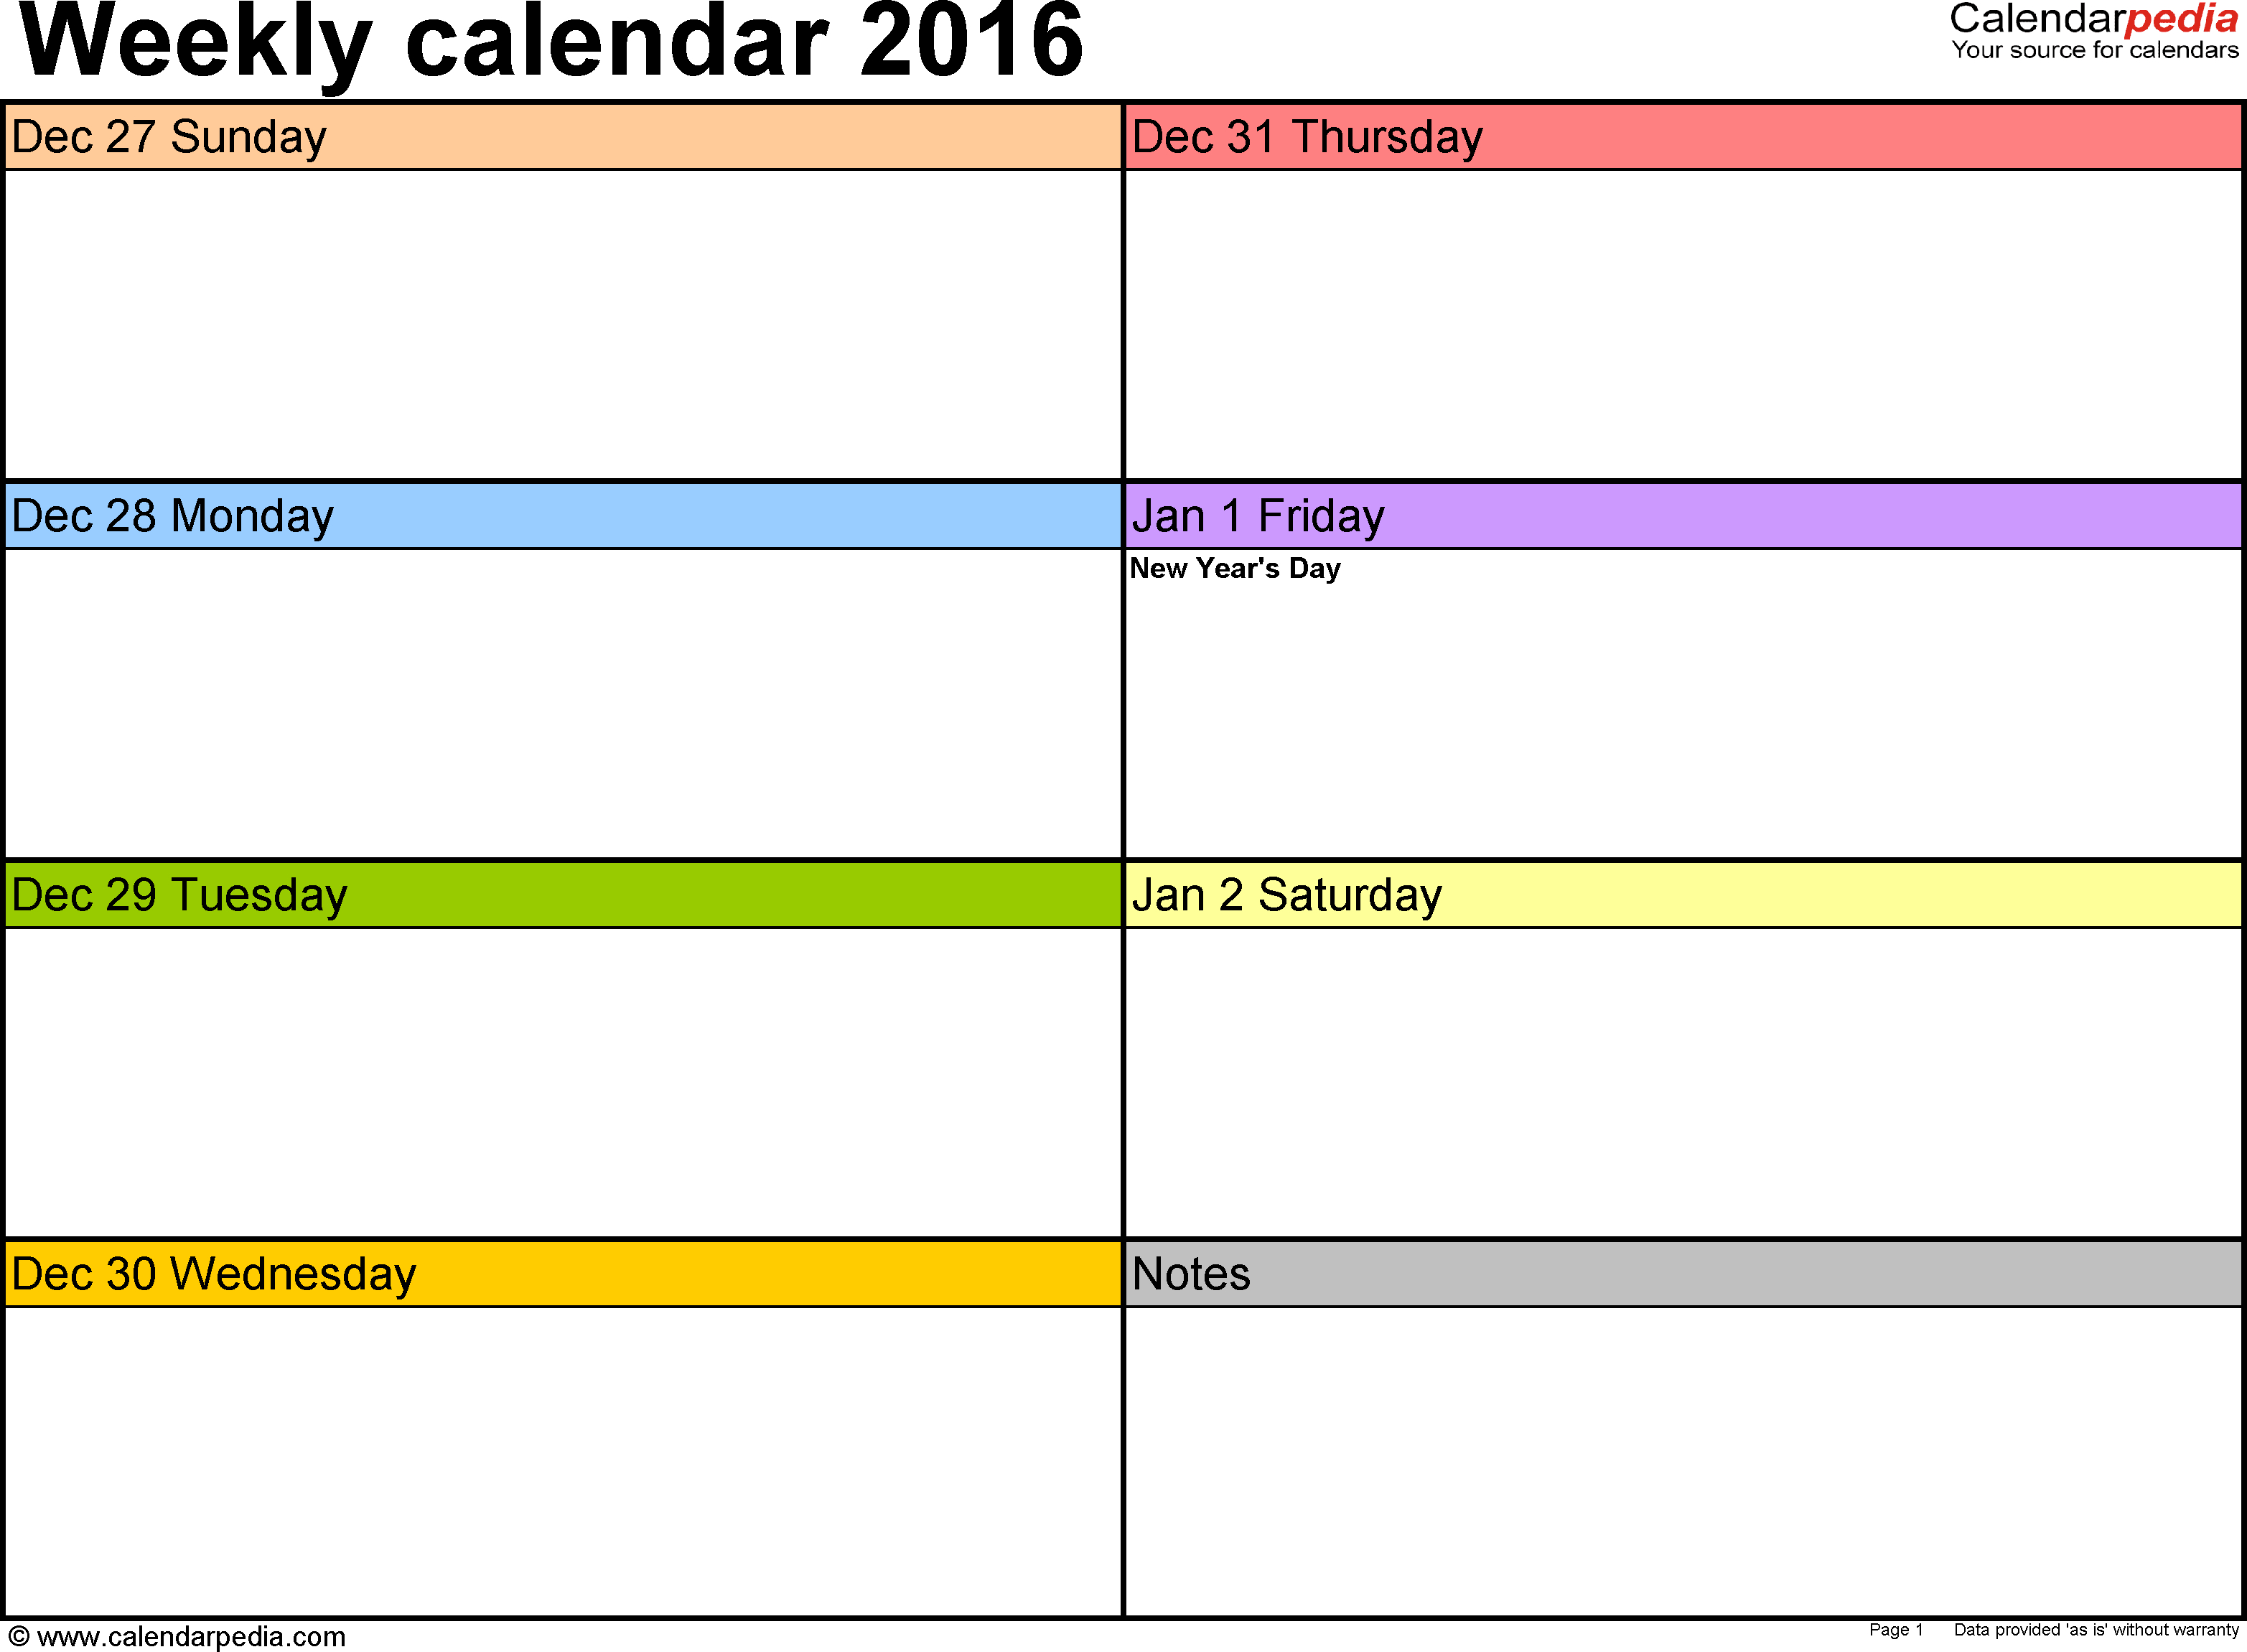 Weekly Calendar 2016 For Word - 12 Free Printable Templates pertaining to Printable 2 Week Calendar Template